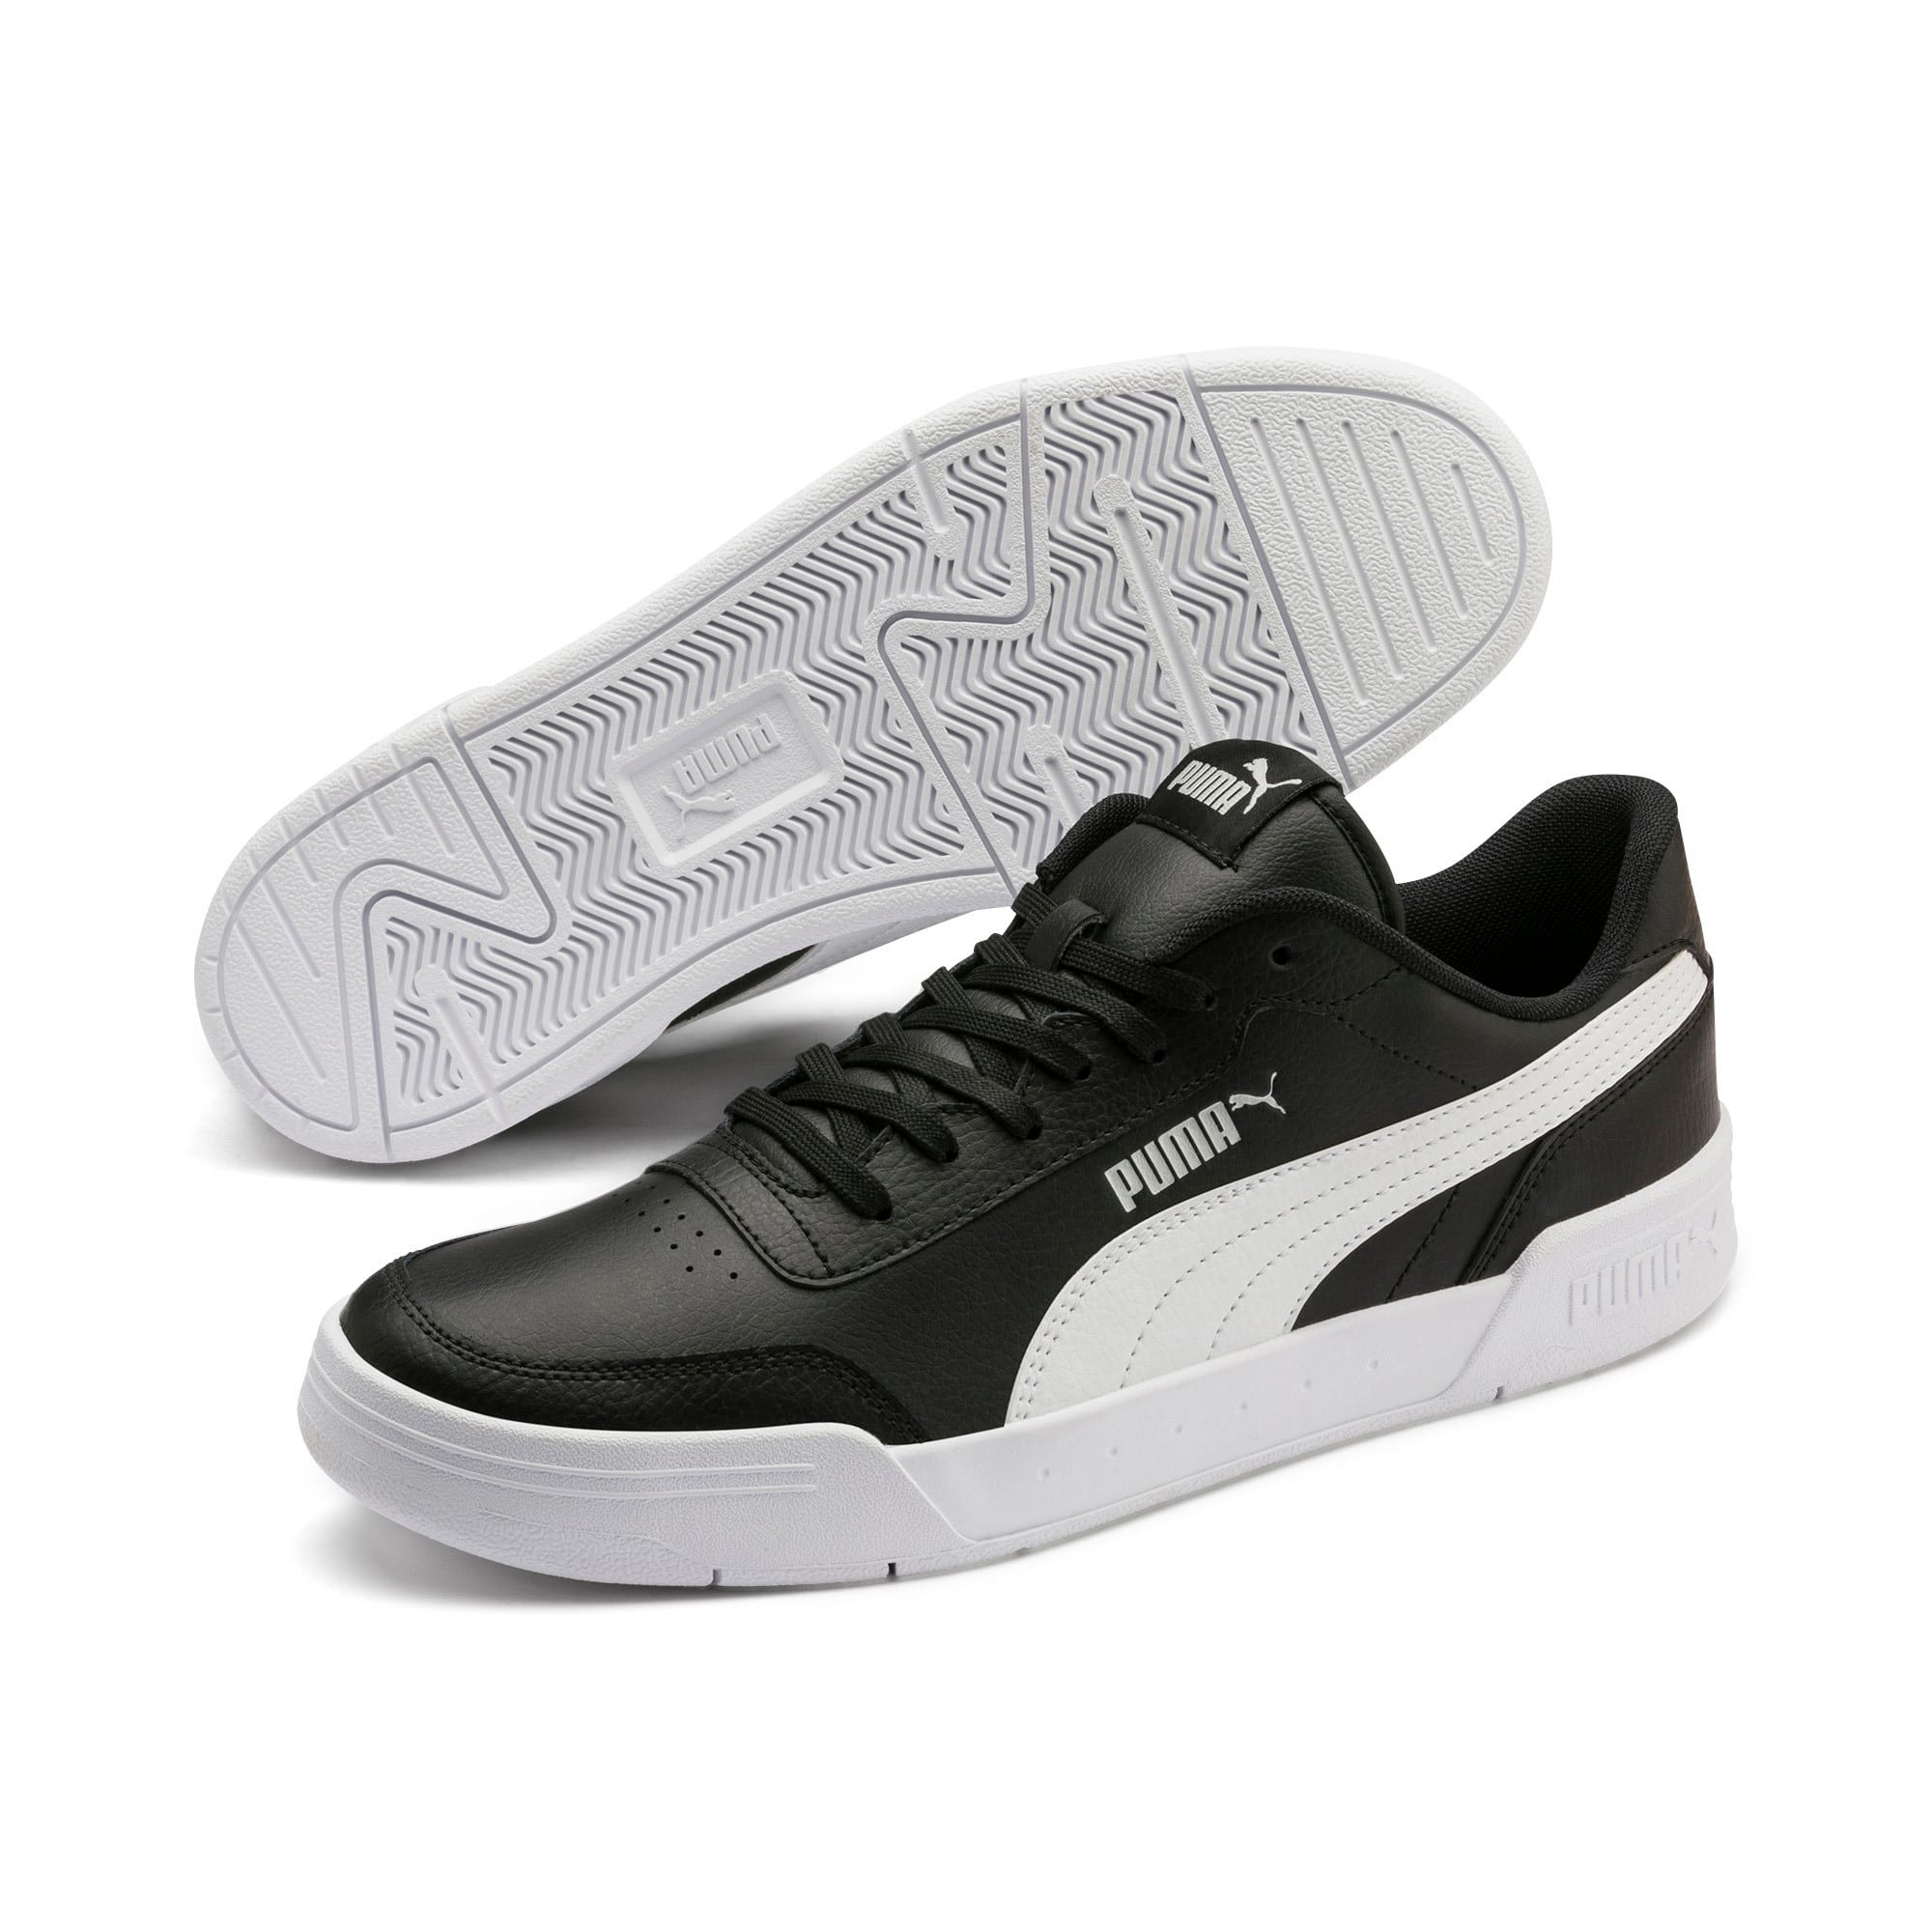 Thumbnail 3 of Caracal Sneakers, Puma Black-Puma White, medium